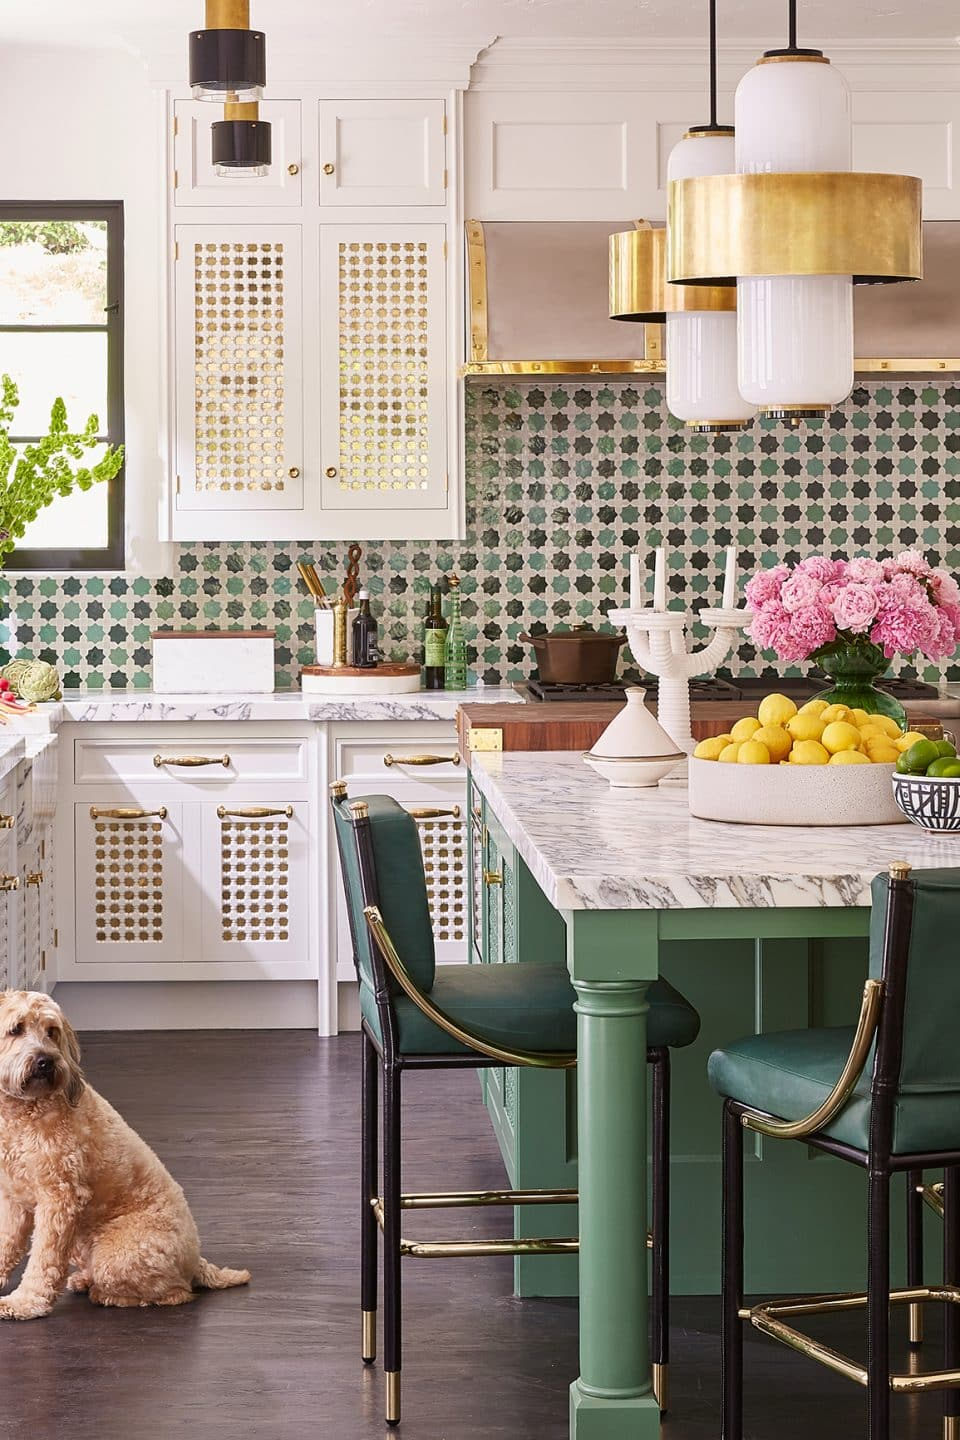 What Makes a Perfect Kitchen? Ask Barbara Sallick